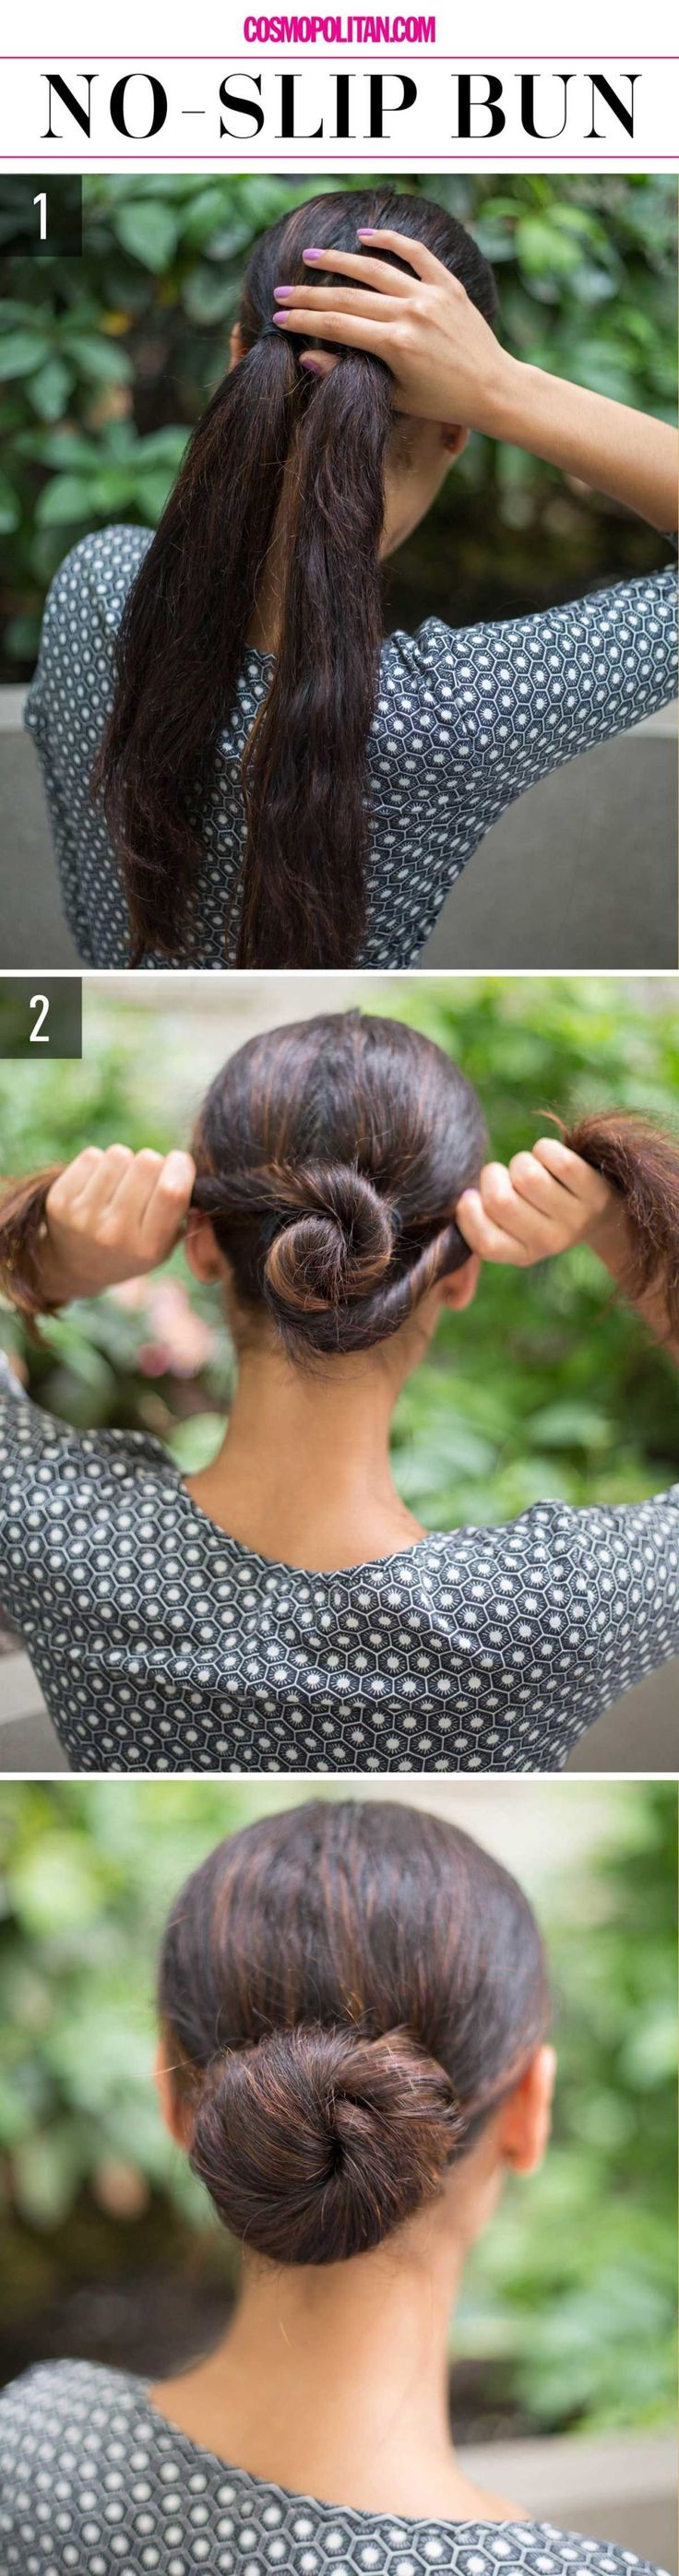 supereasy hairstyles for lazy girls who canut even ponytail